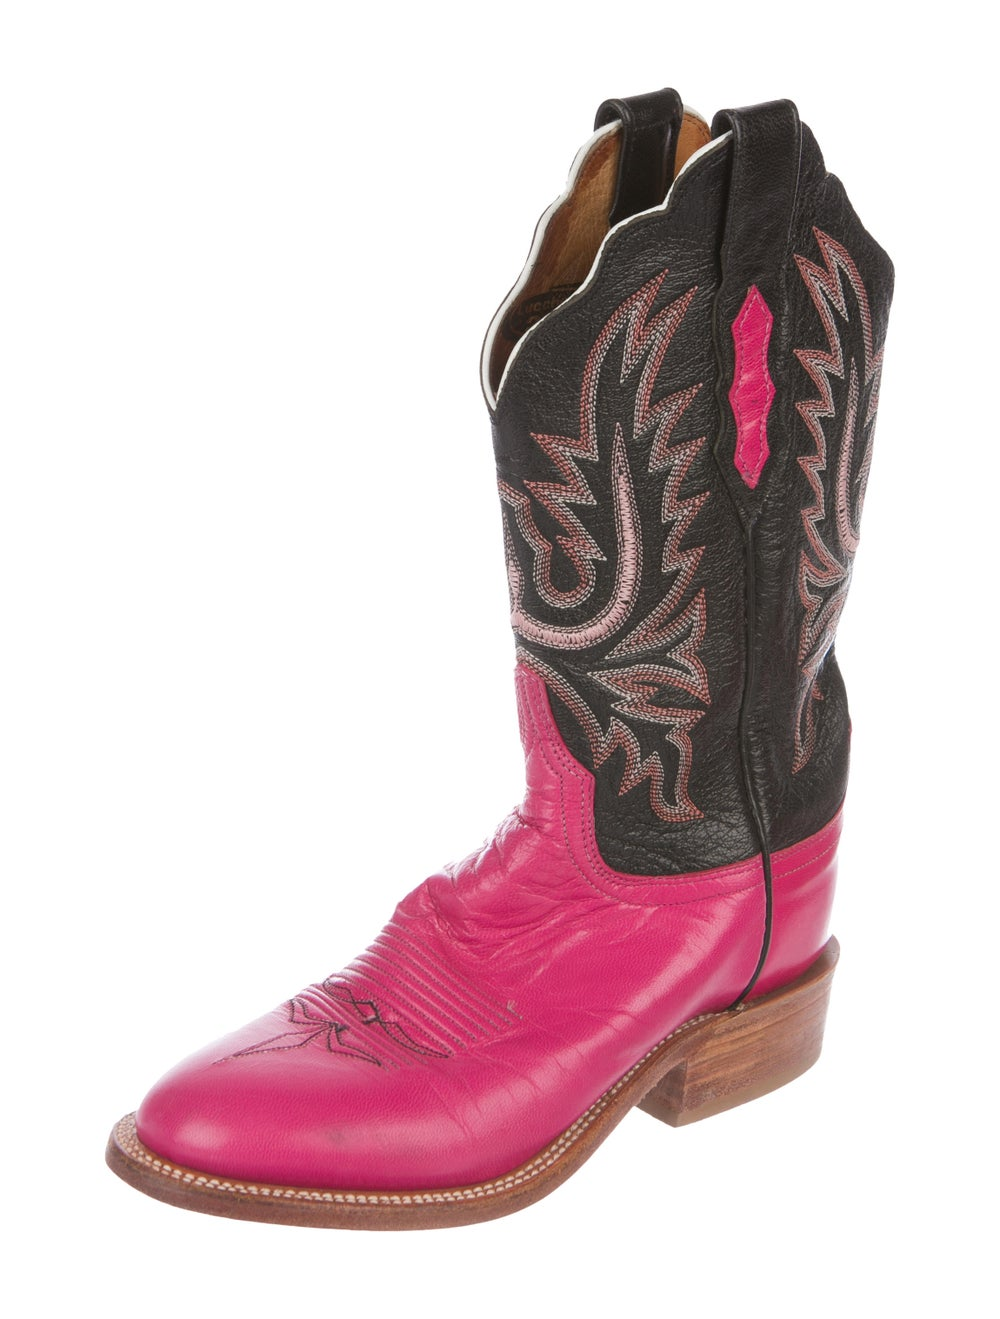 Lucchese Leather Cowboy Boots Pink - image 2